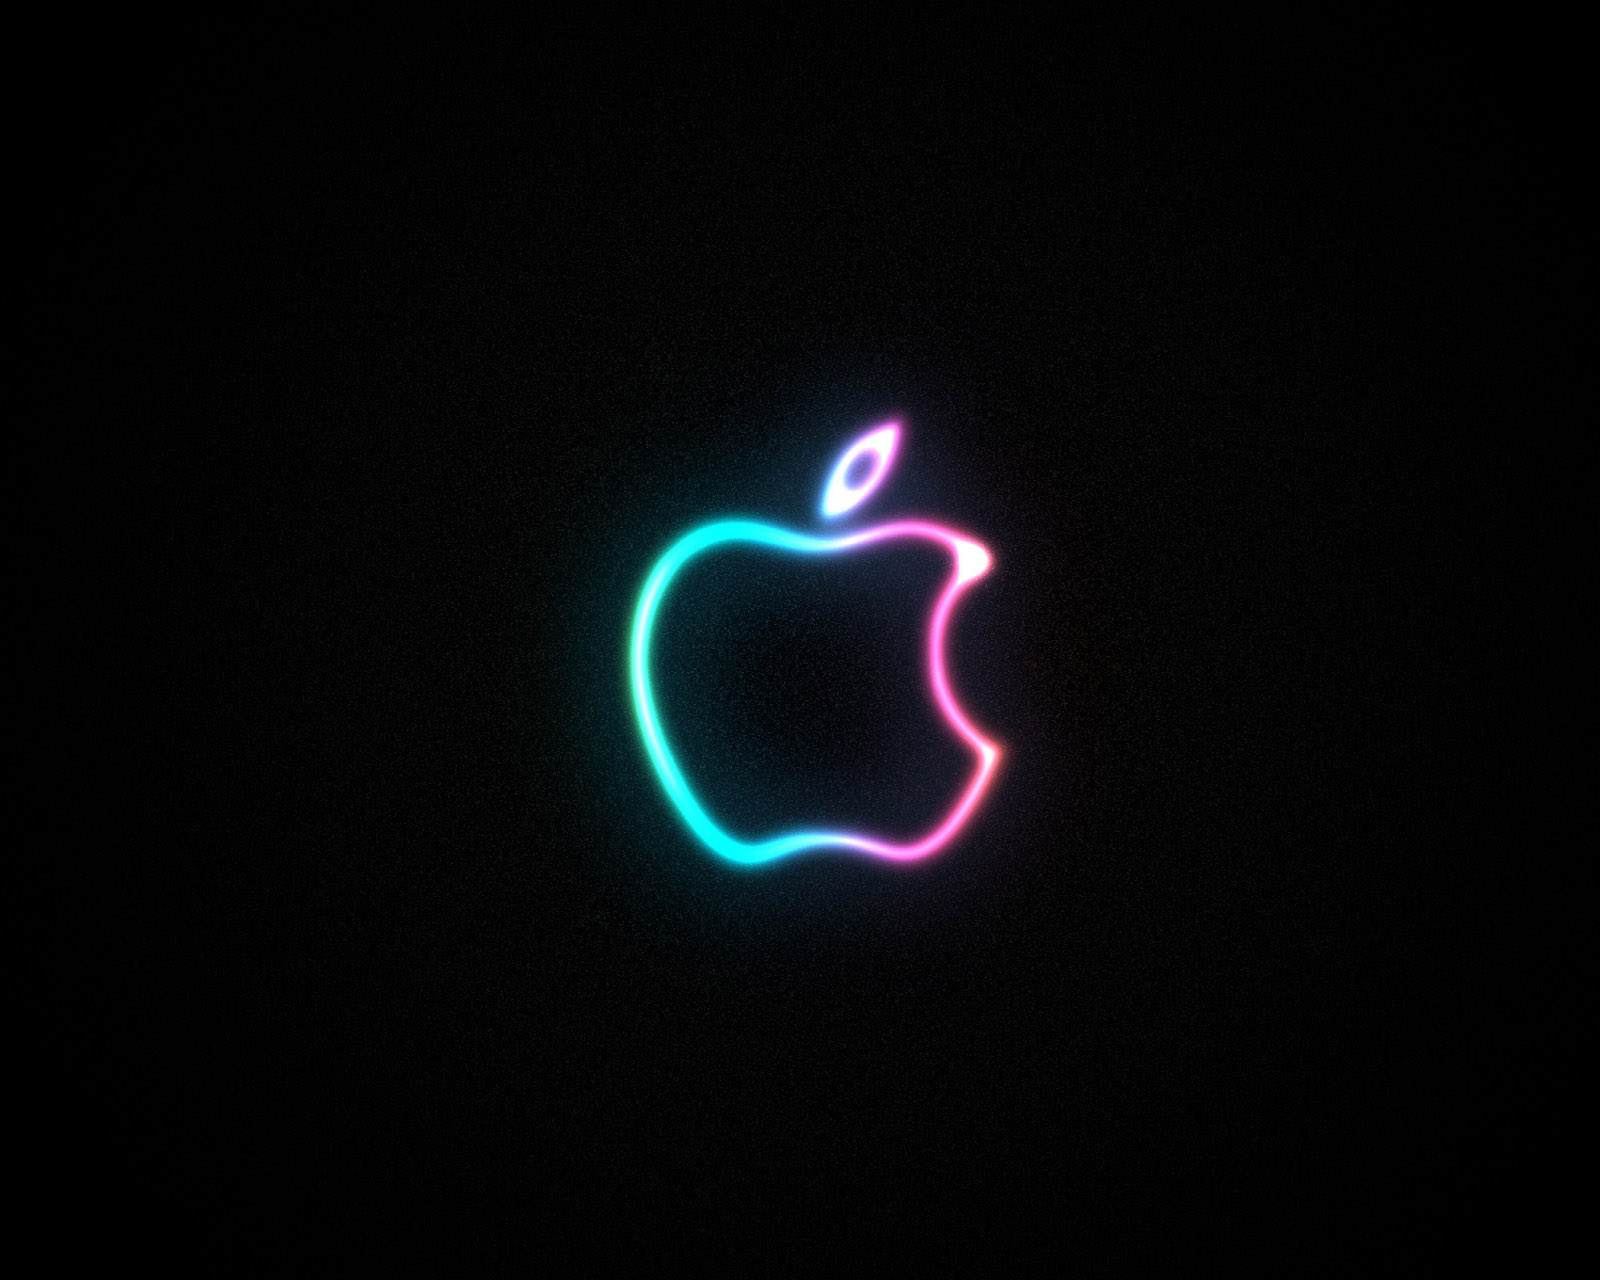 Apple-Logo-Background-Hd-wallpaper-wp6002052